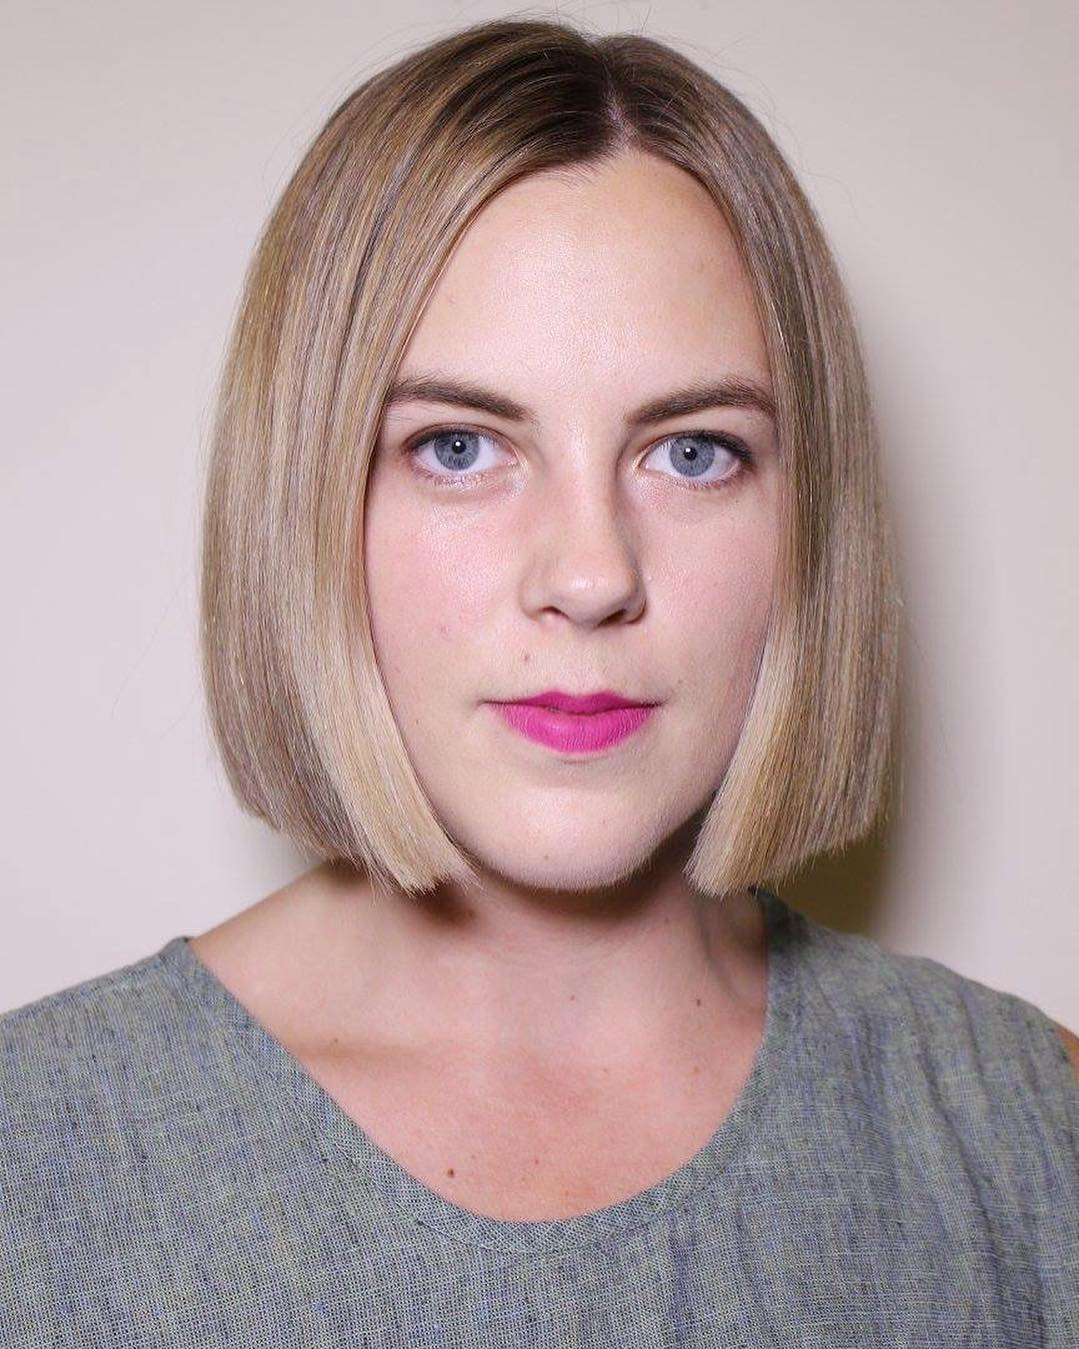 Sleek Blunt Bob with Blonde Color and Subtle Highlights Medium Length Hairstyle